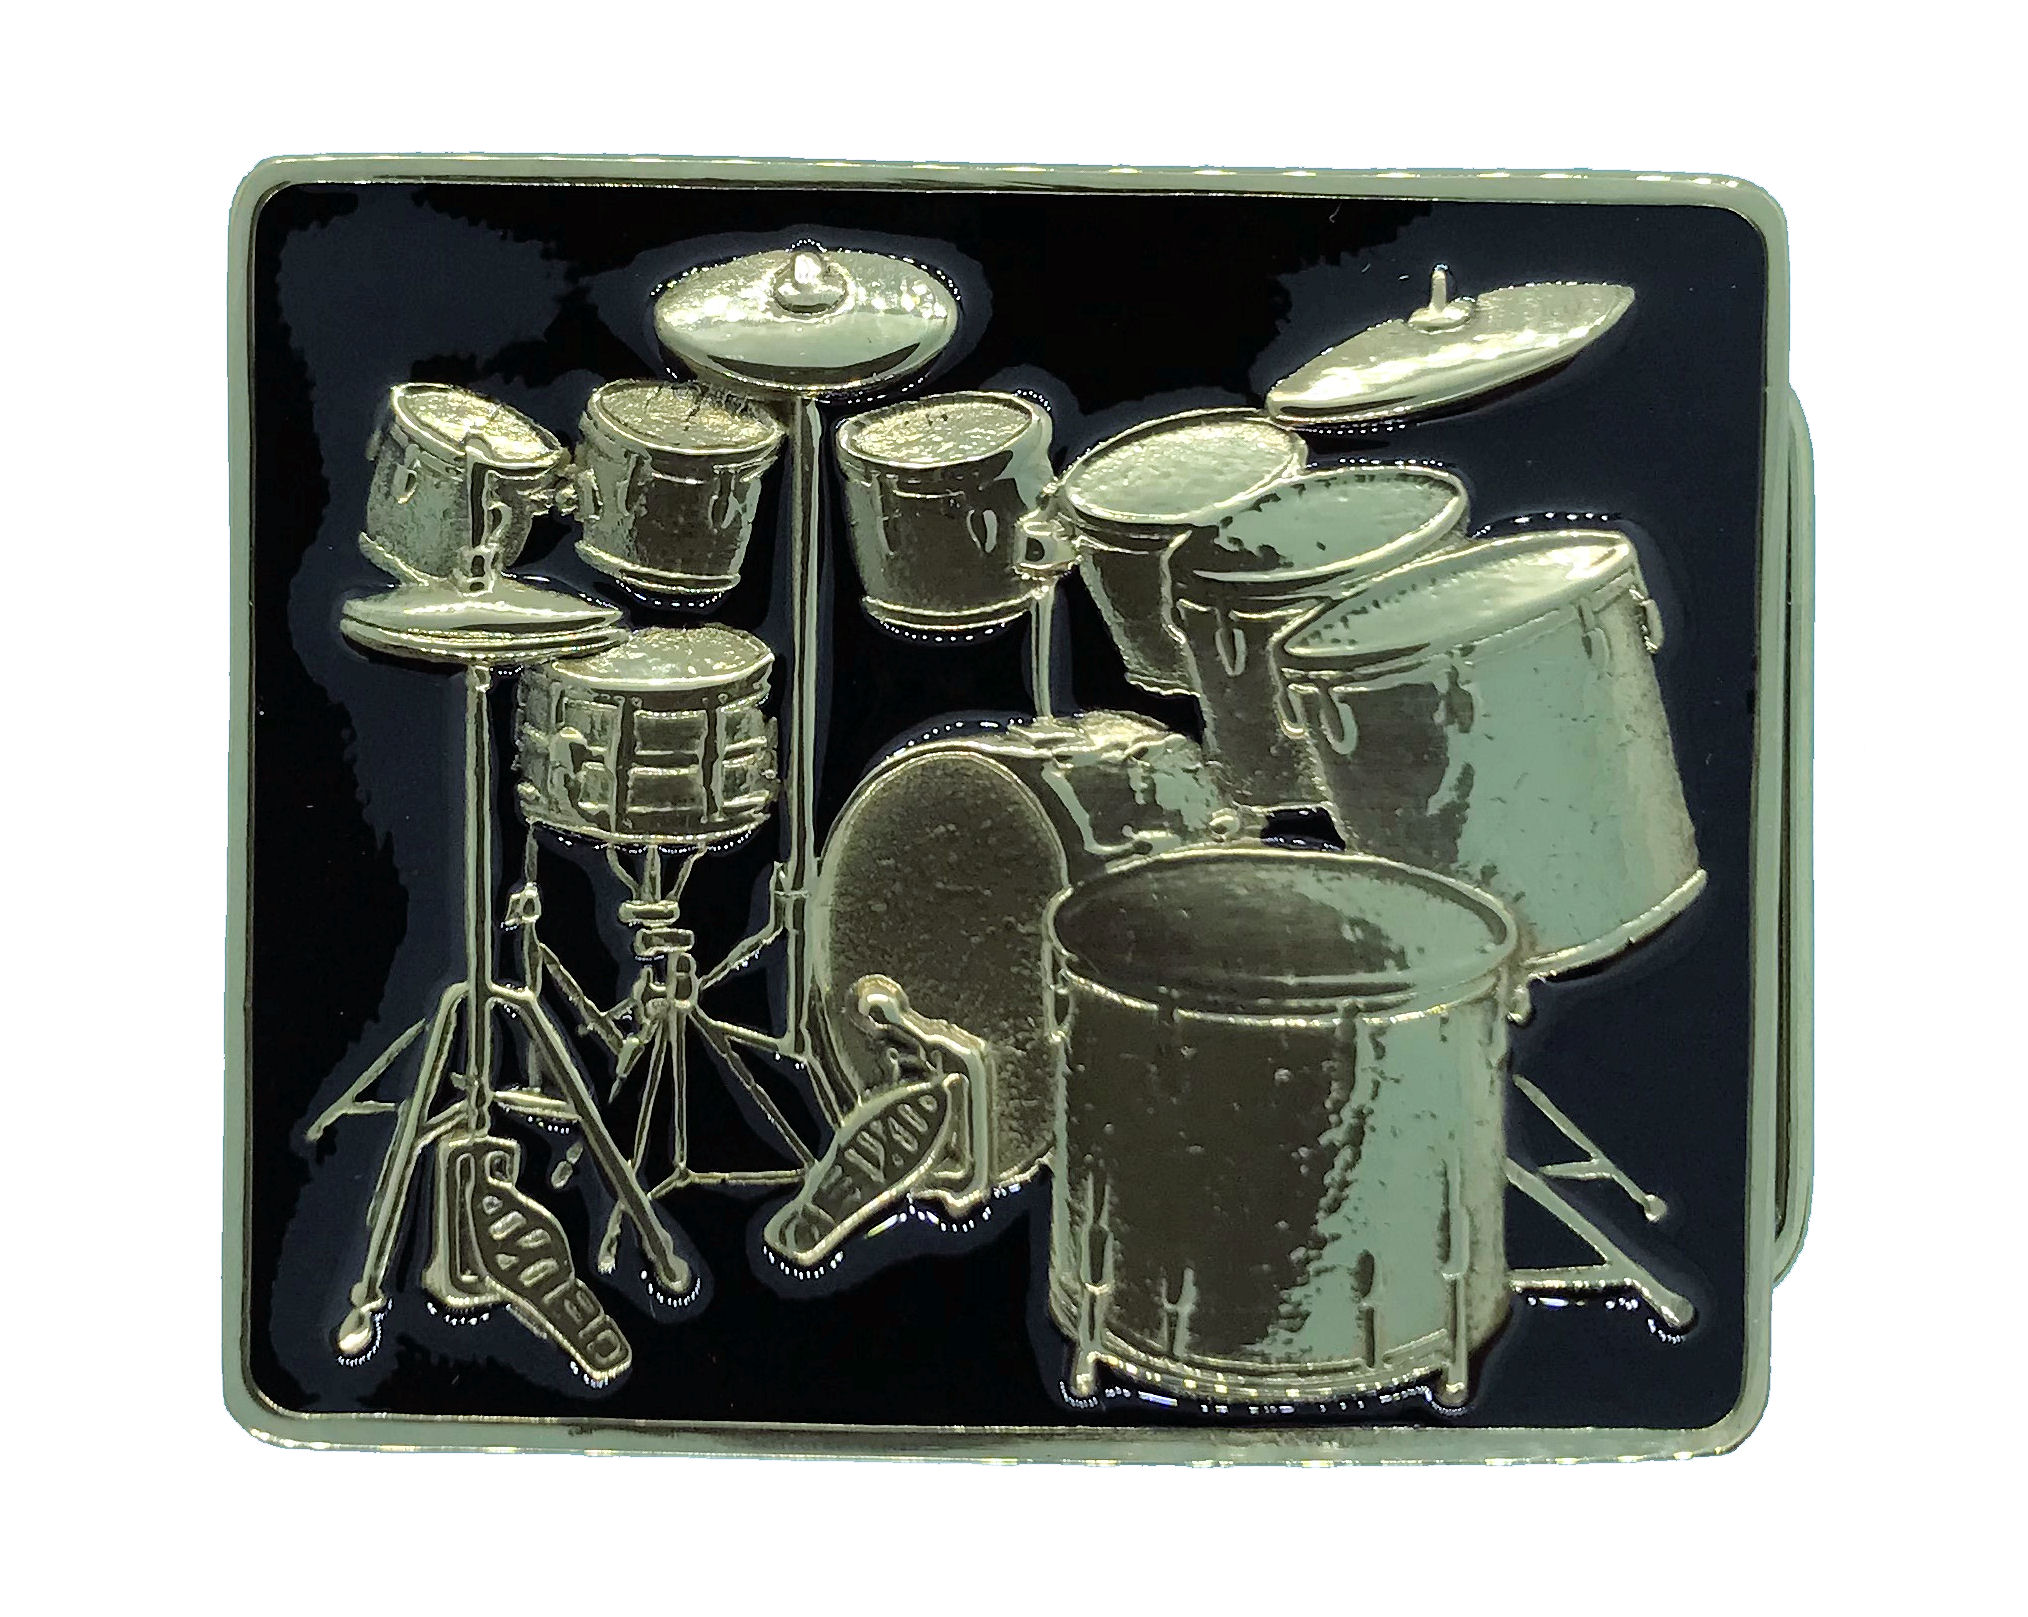 large drum kit